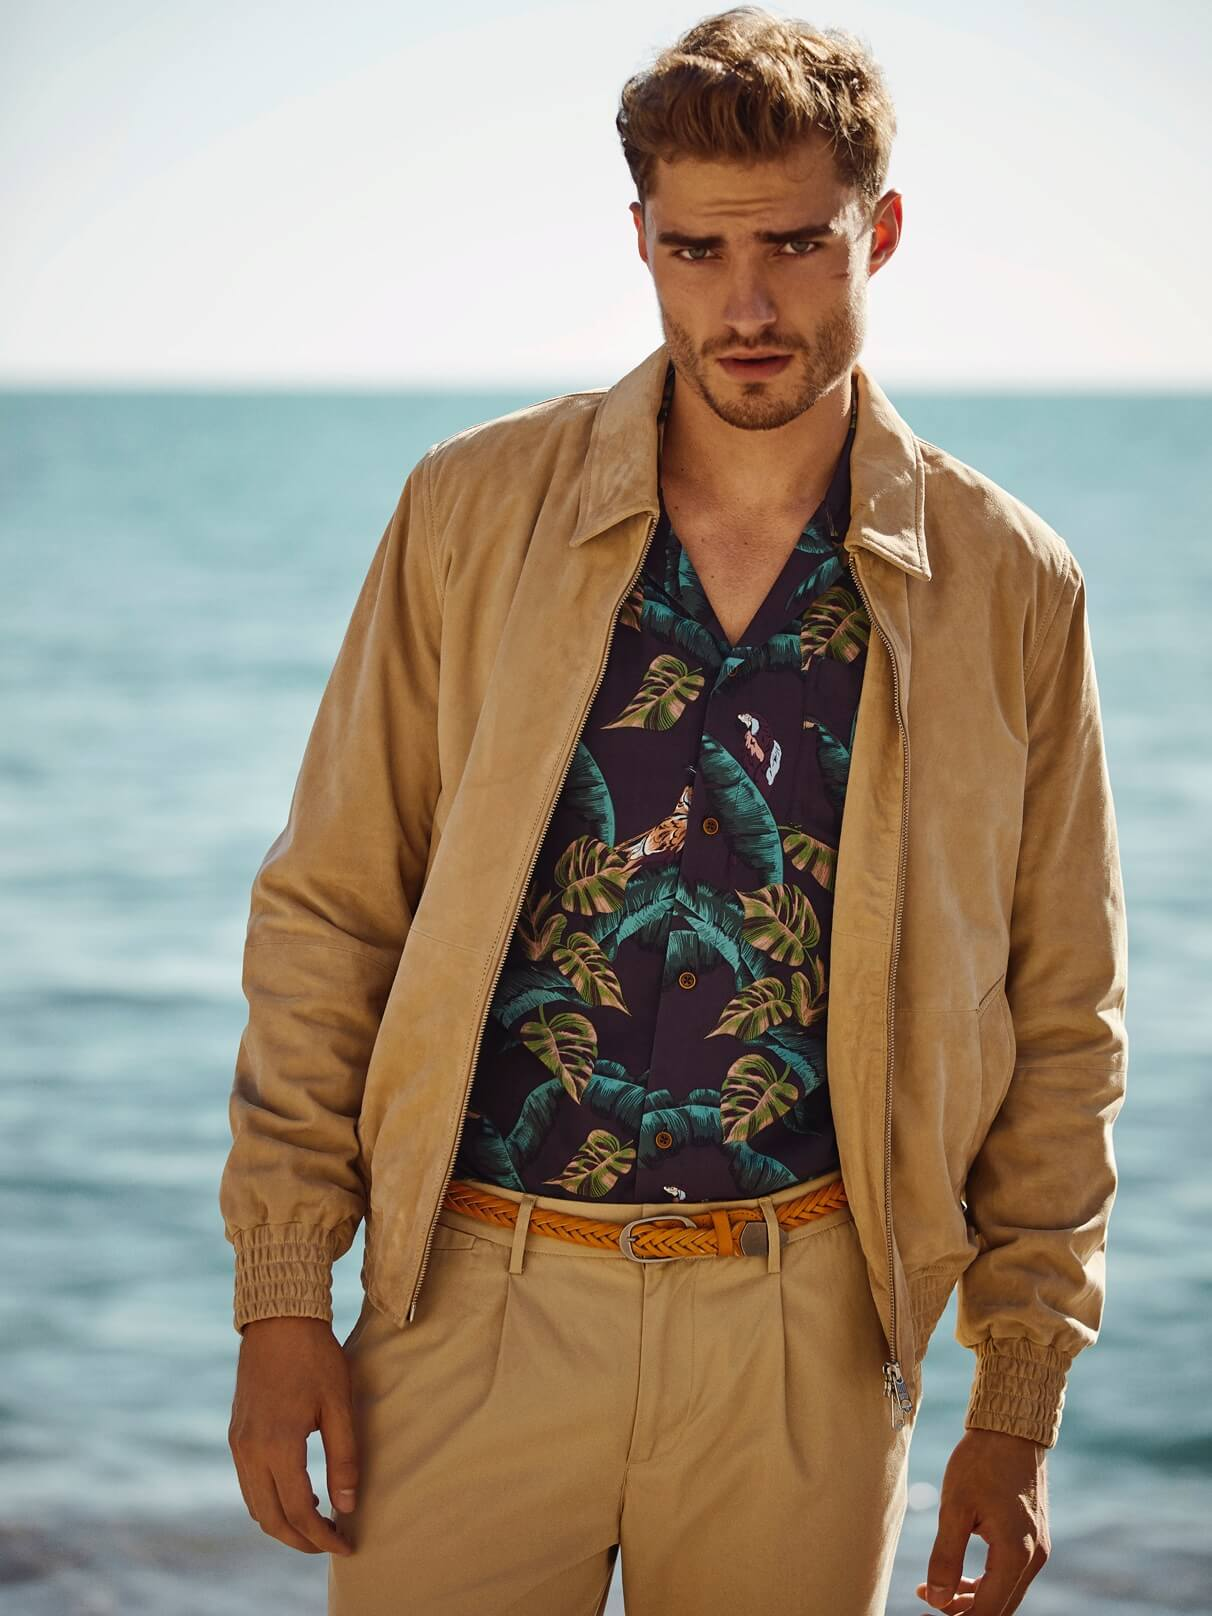 Bamboo Beach Editorial women and men 2019